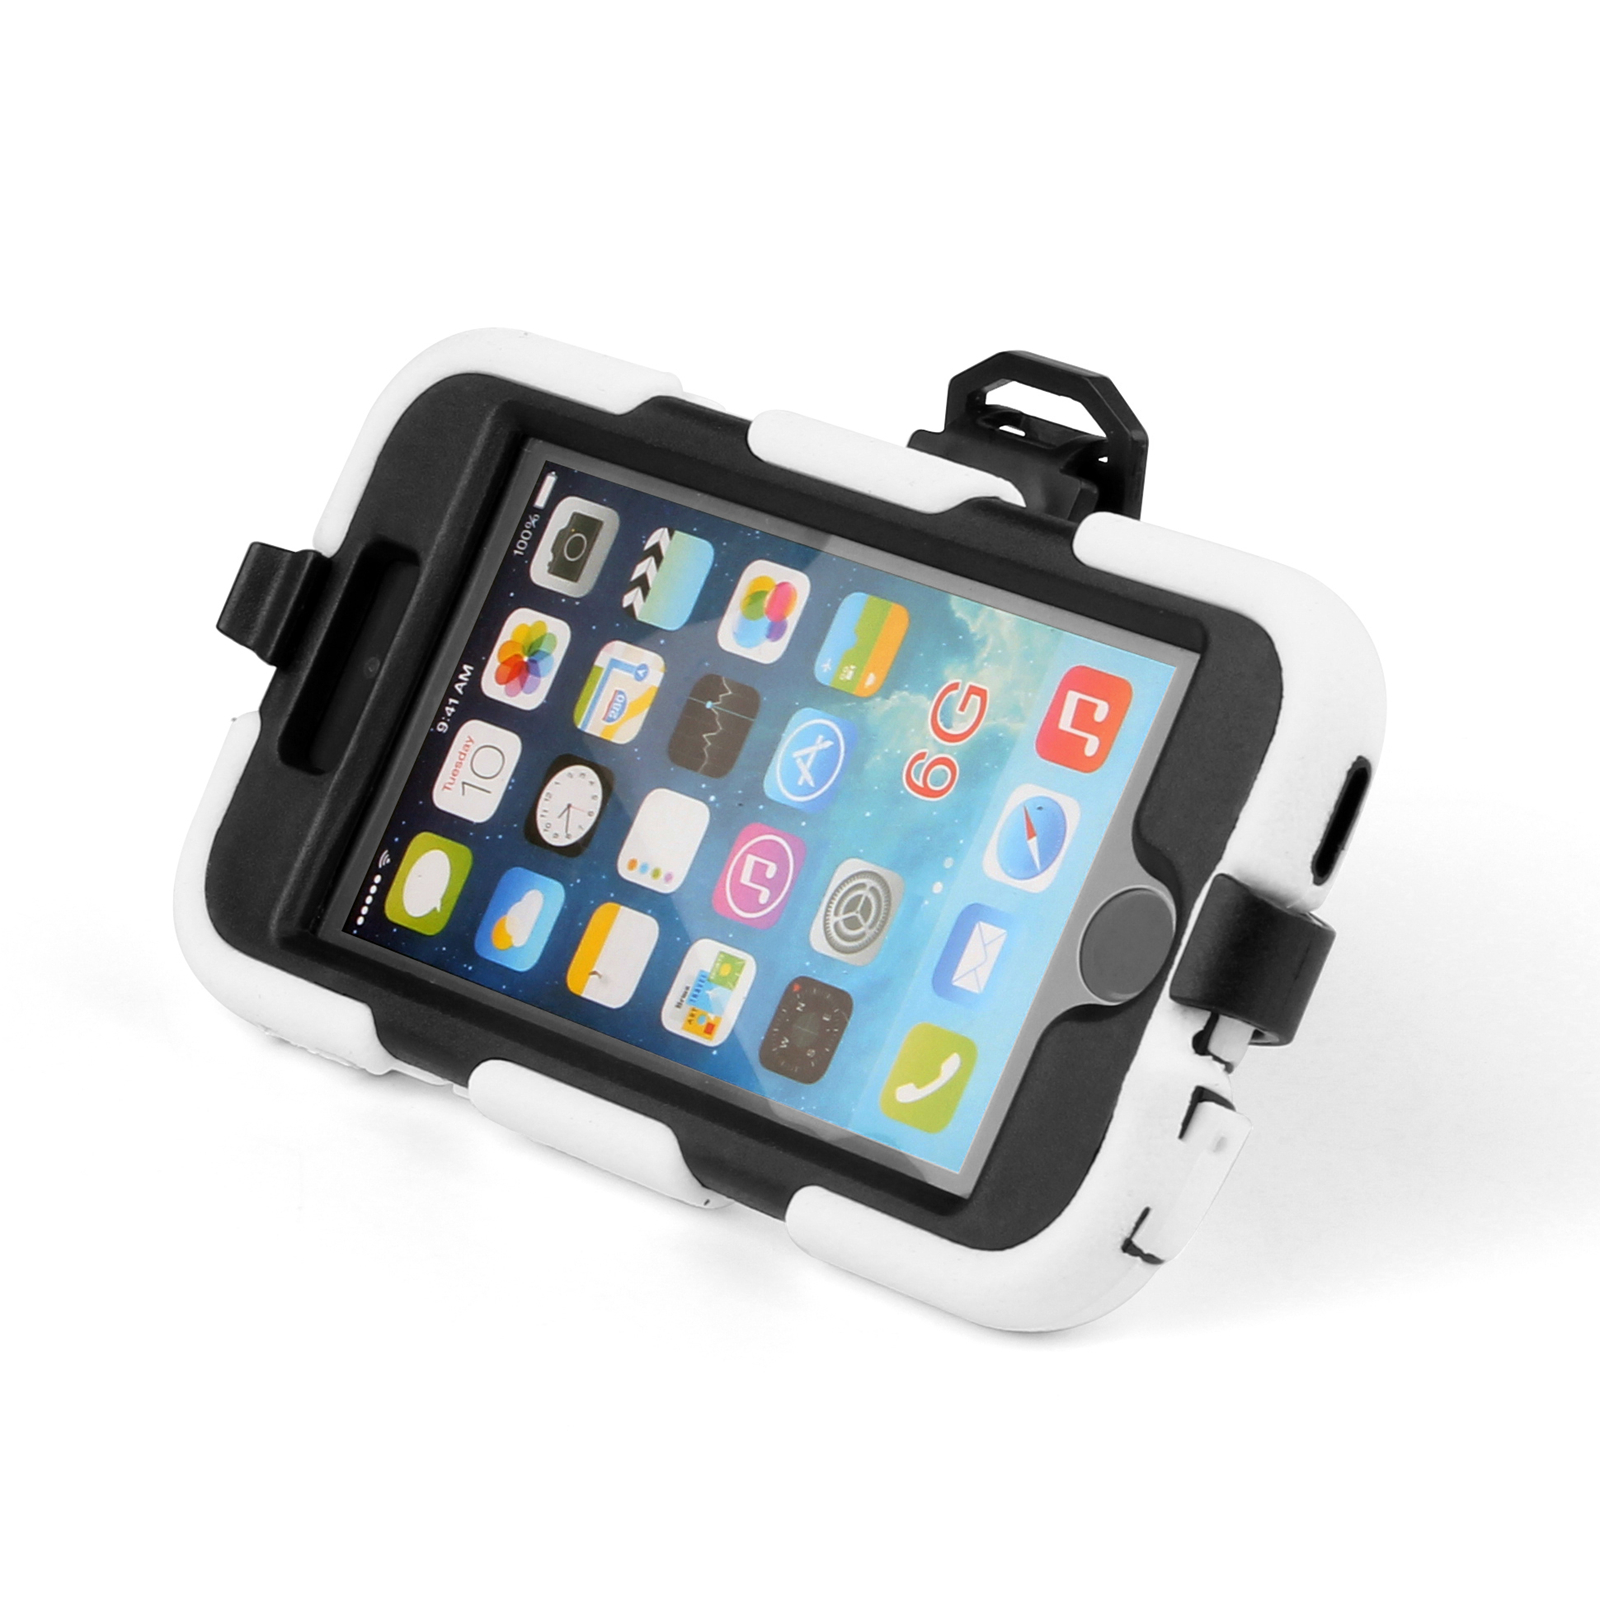 new iphone waterproof new rugged heavy duty waterproof belt clip for iphone 5987